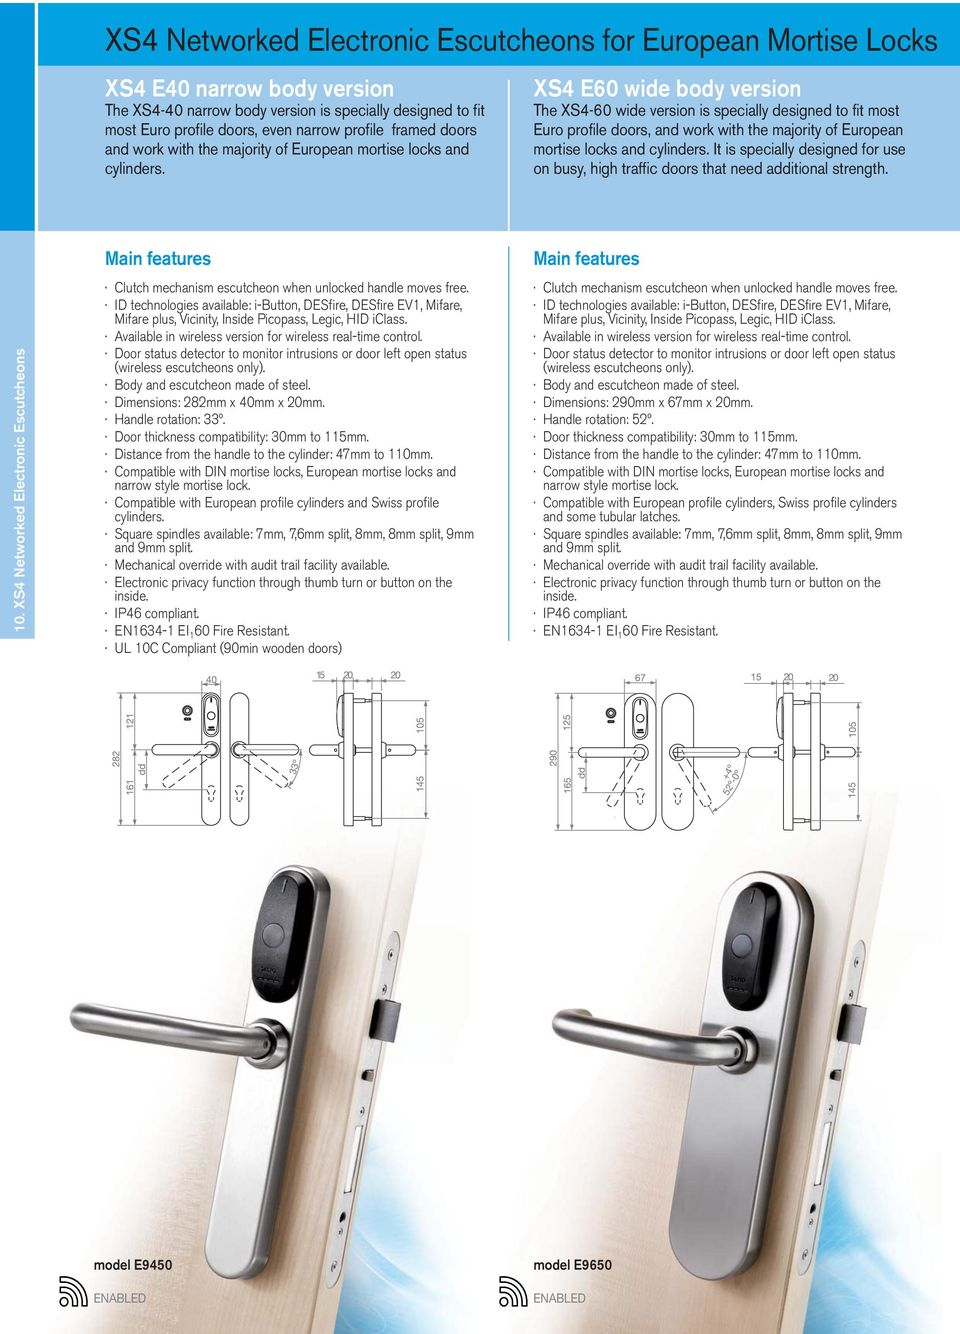 XS4 E60 wide body version The XS4-60 wide version is specially designed to fit most Euro profile doors, and work with the majority of European mortise locks and cylinders.